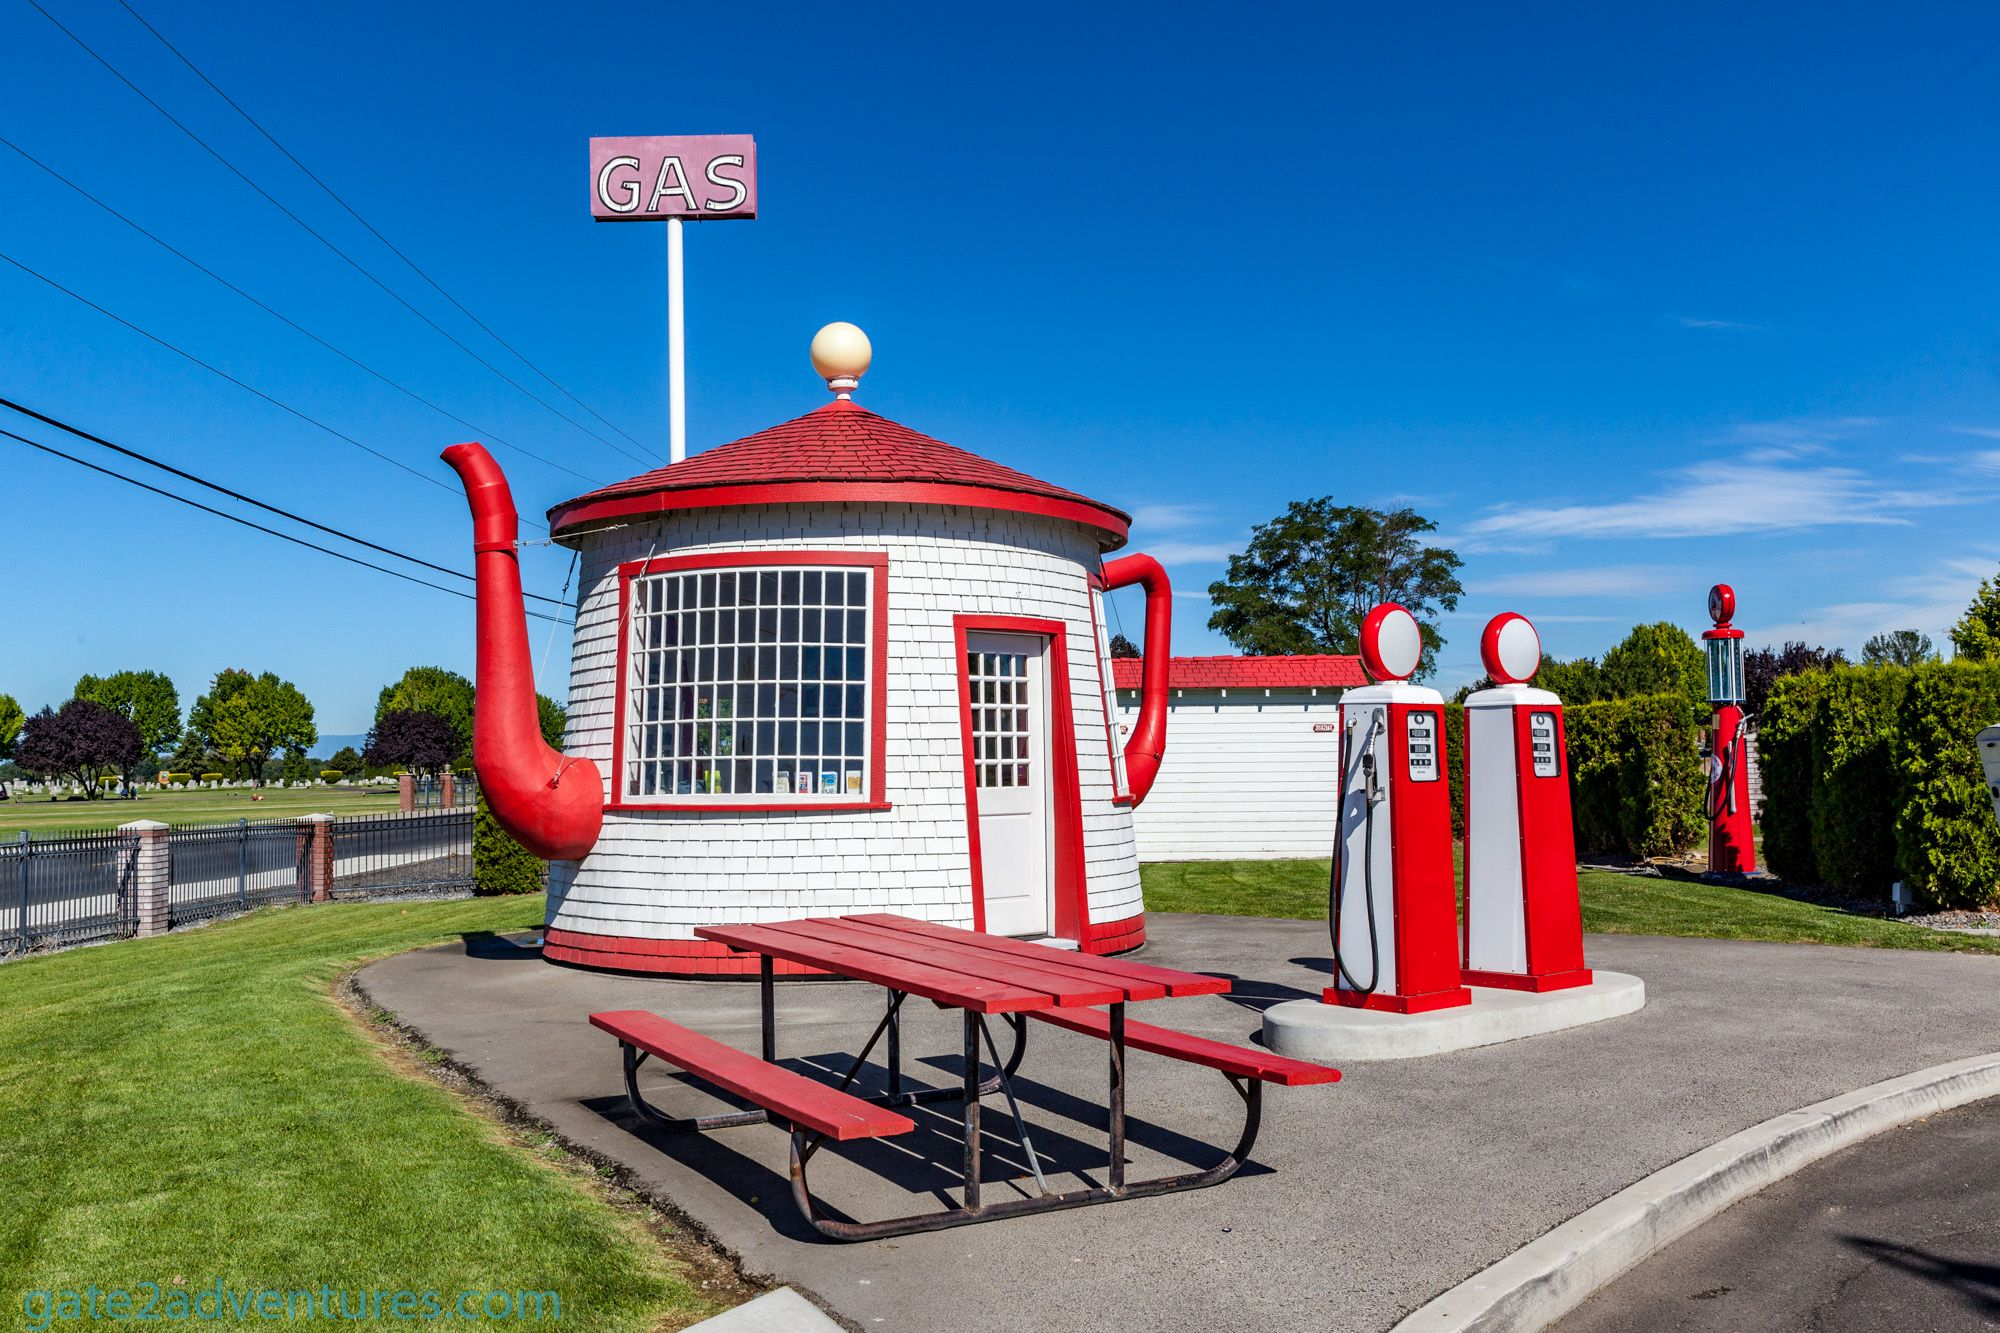 Teapot Dome Gas Station National Historic Site